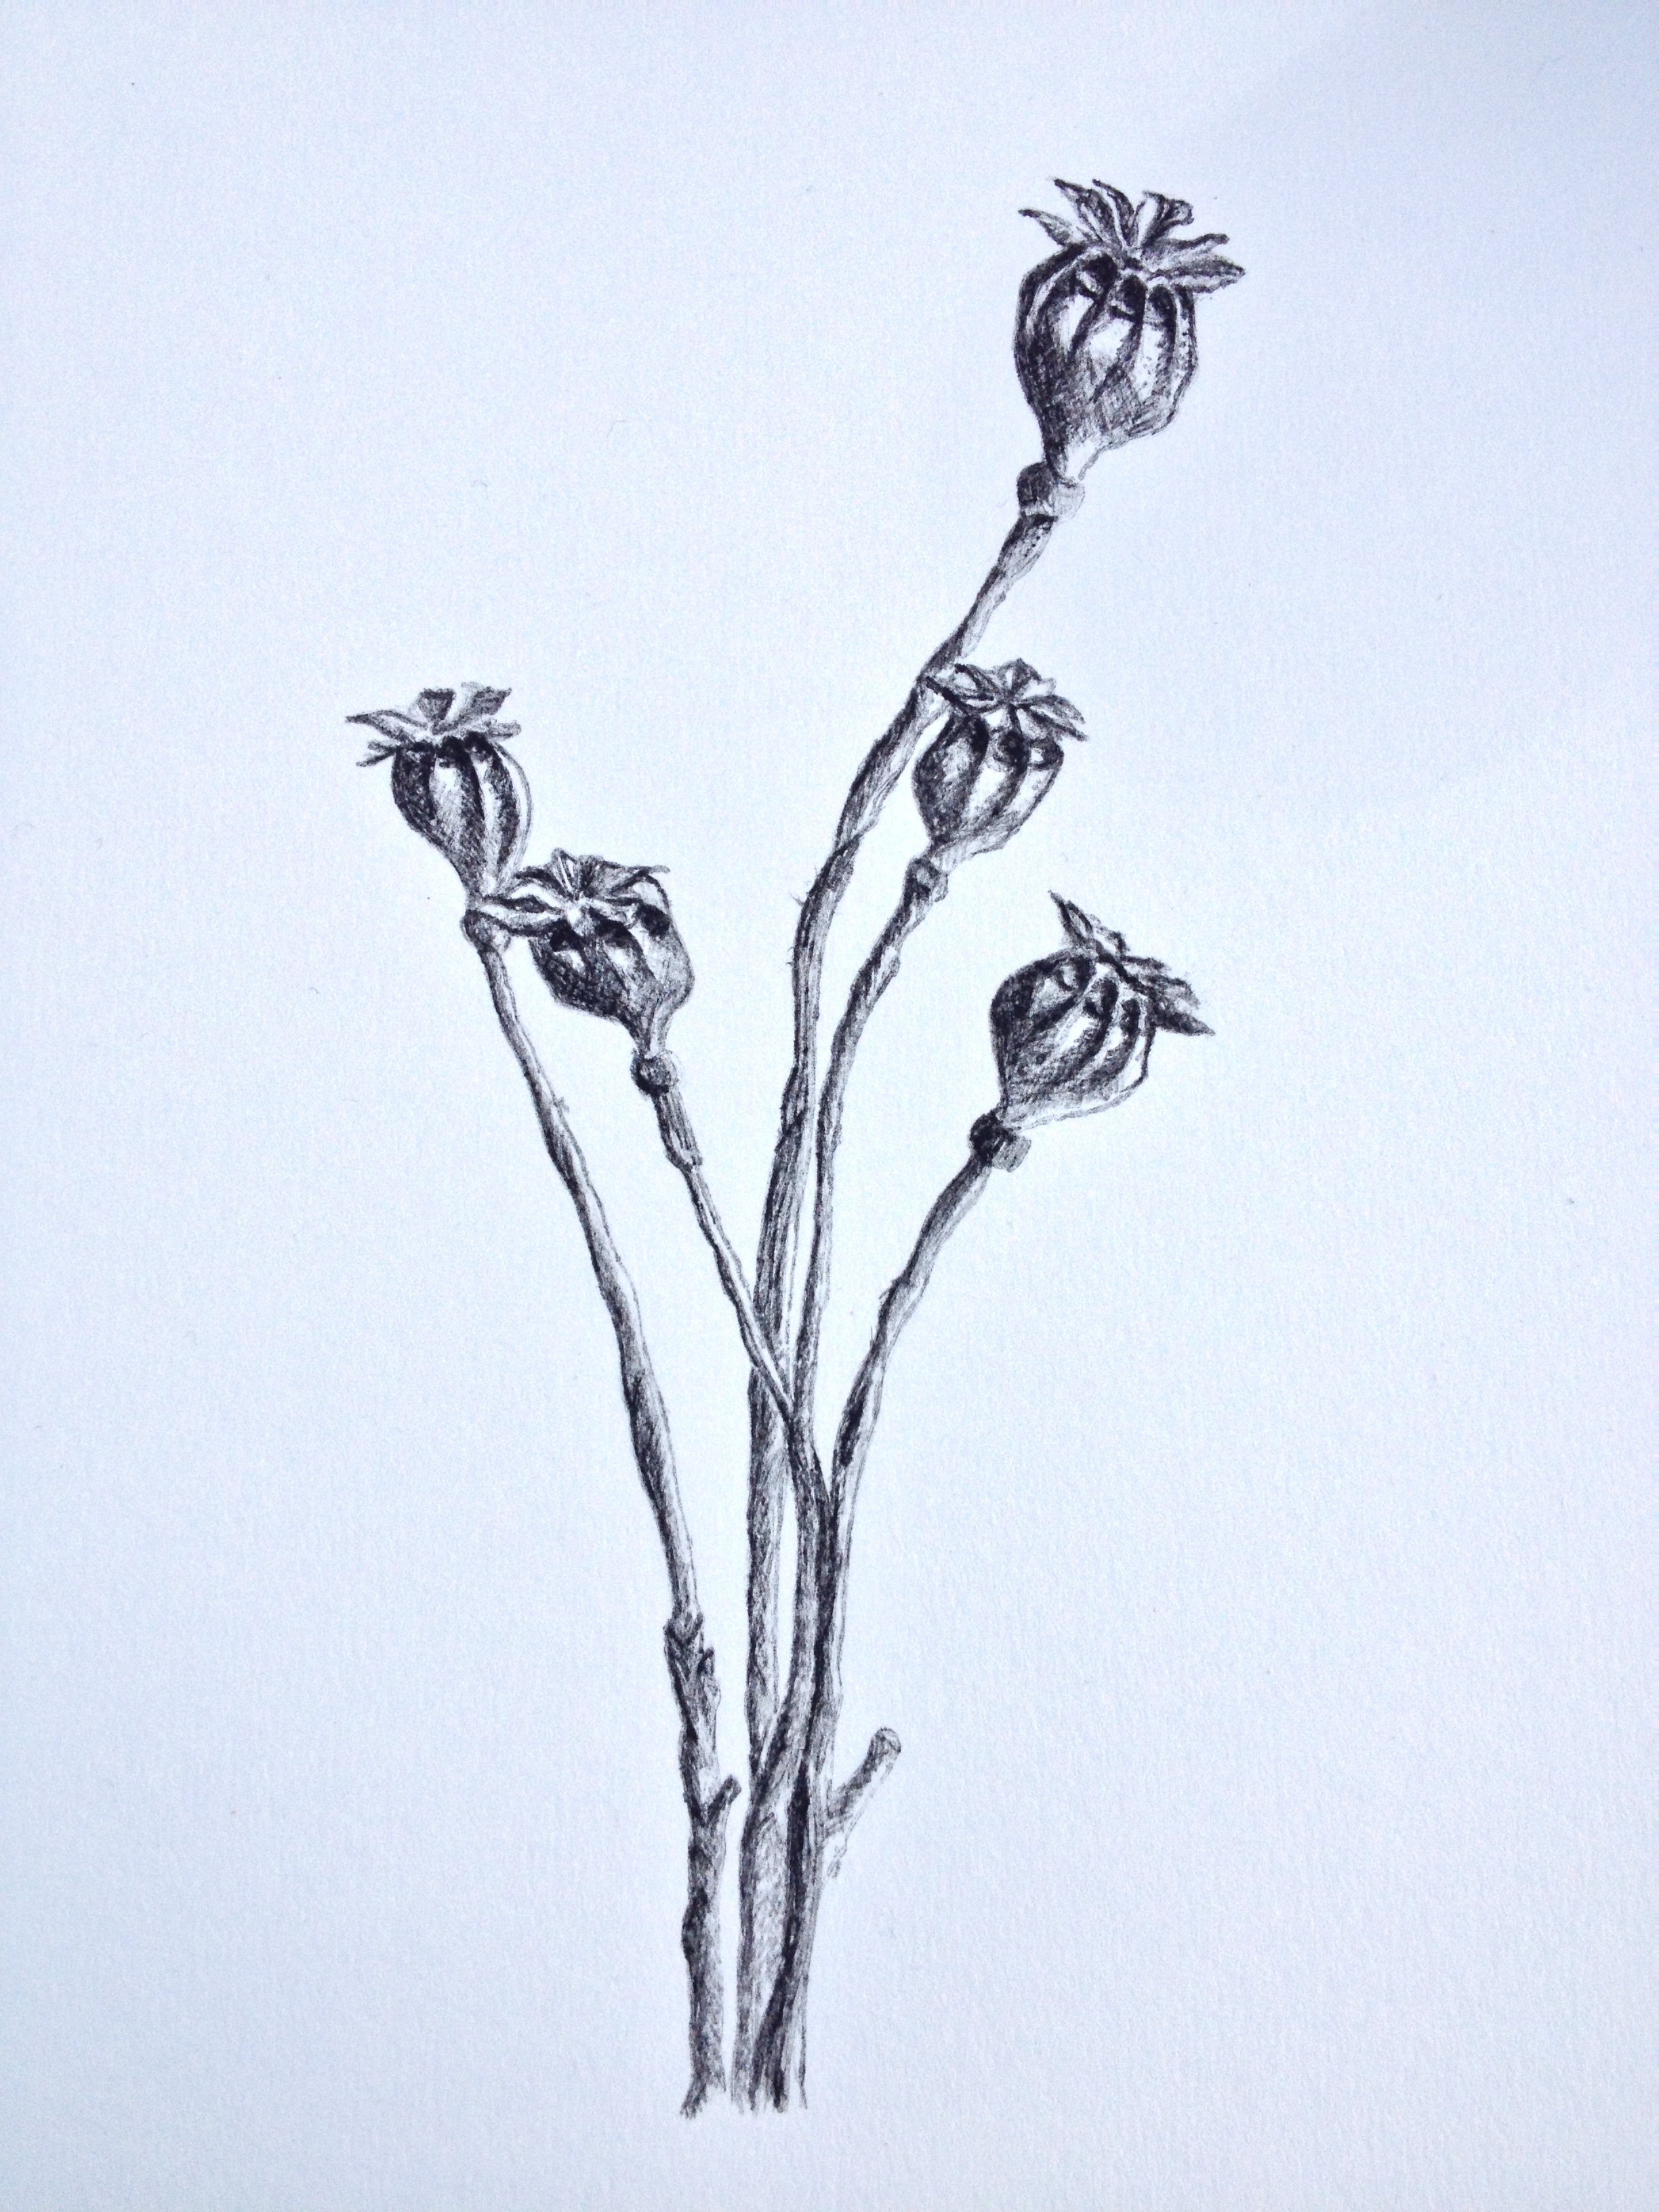 Drawn poppy poppy seed – heads Poppy – October